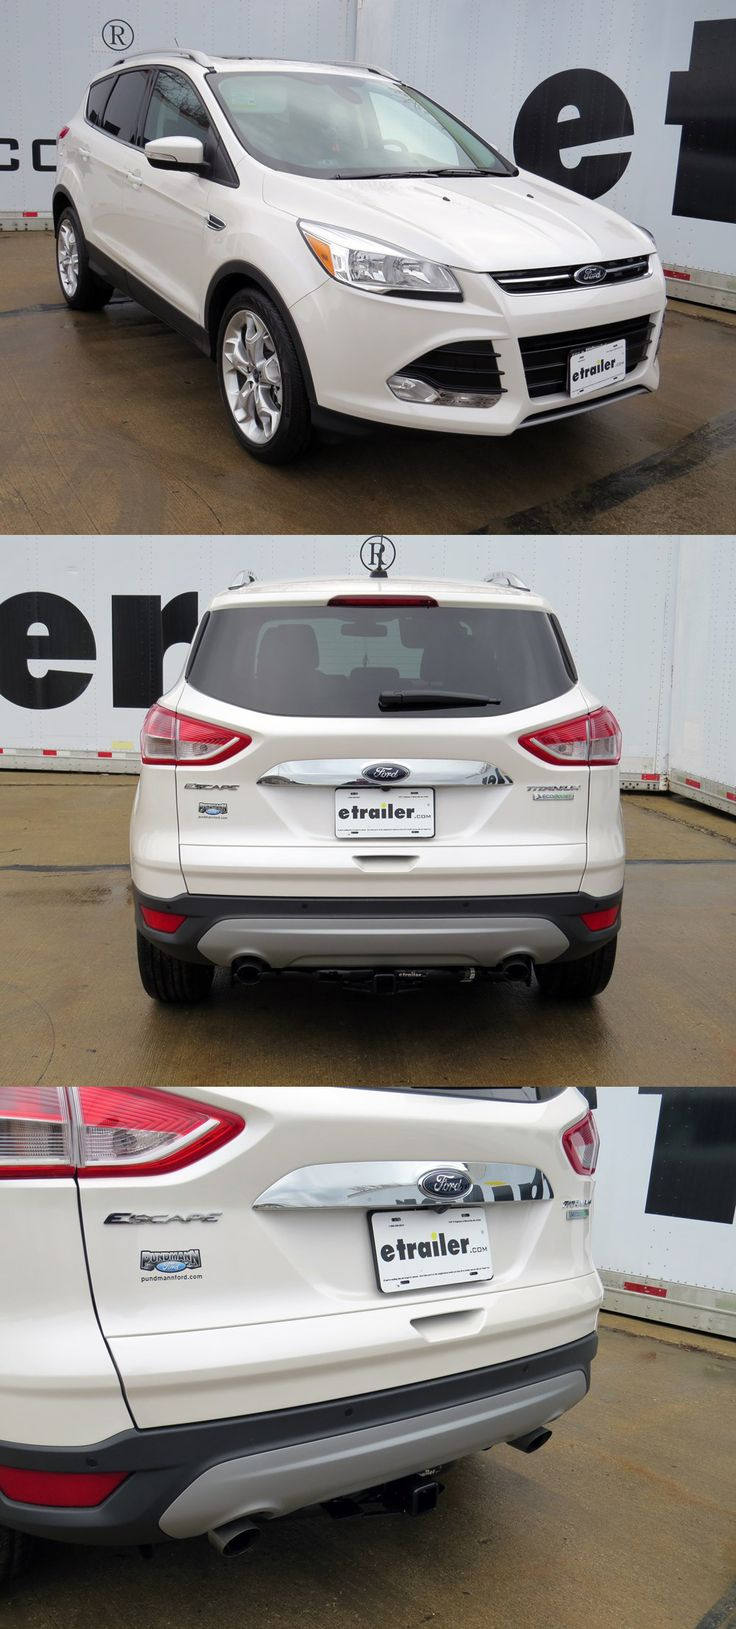 This ford escape 2015 features a hidden hitch trailer hitch one of the top accessories